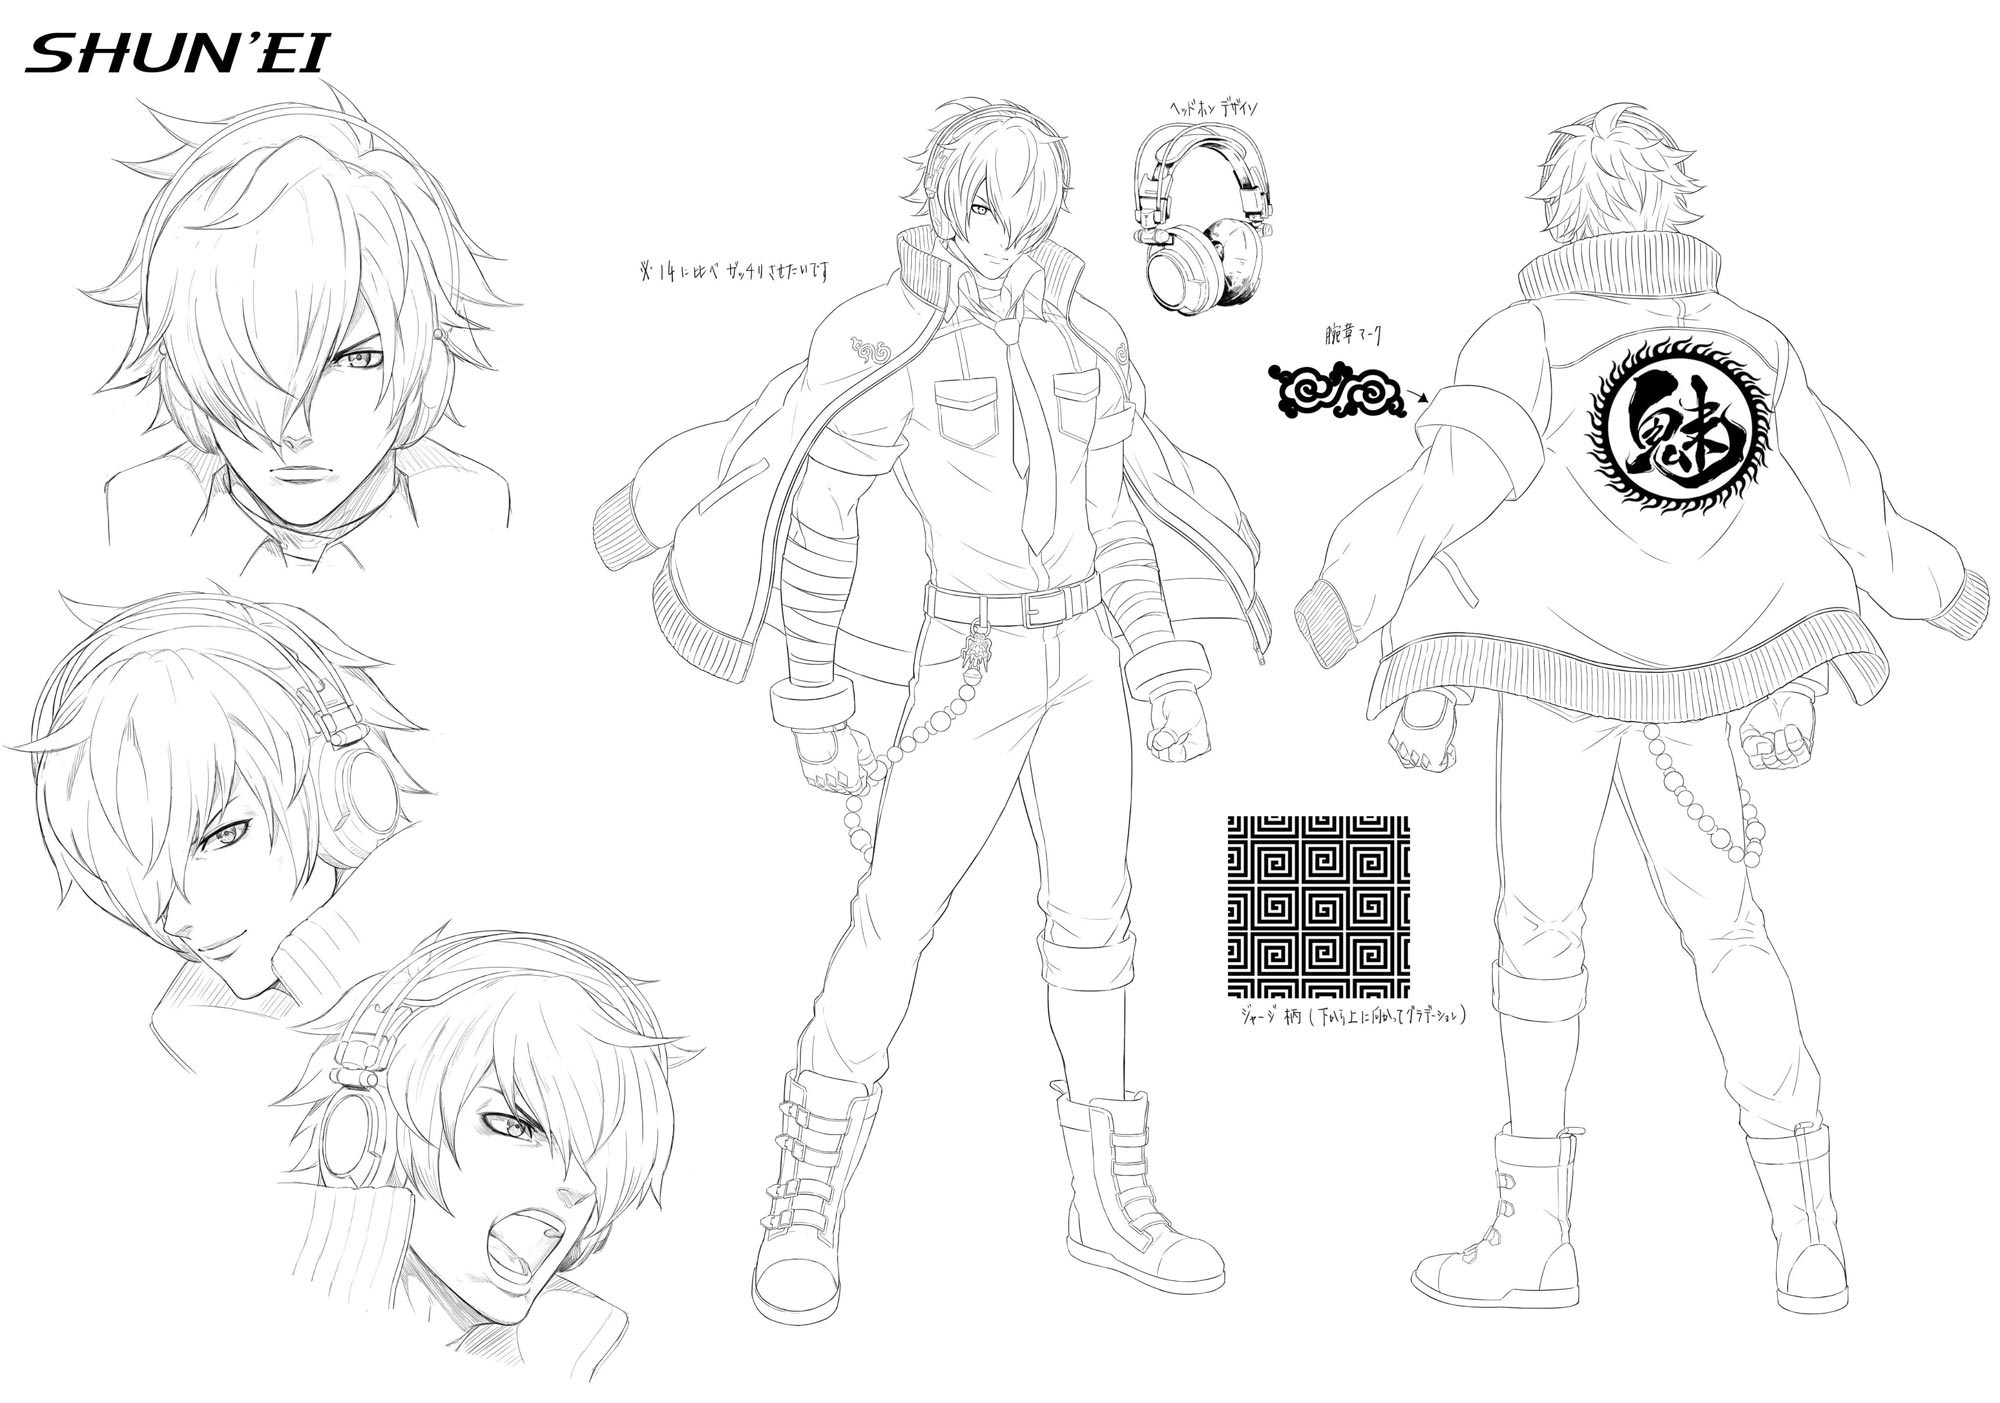 King of Fighters 15 characters and logo 3 out of 5 image gallery